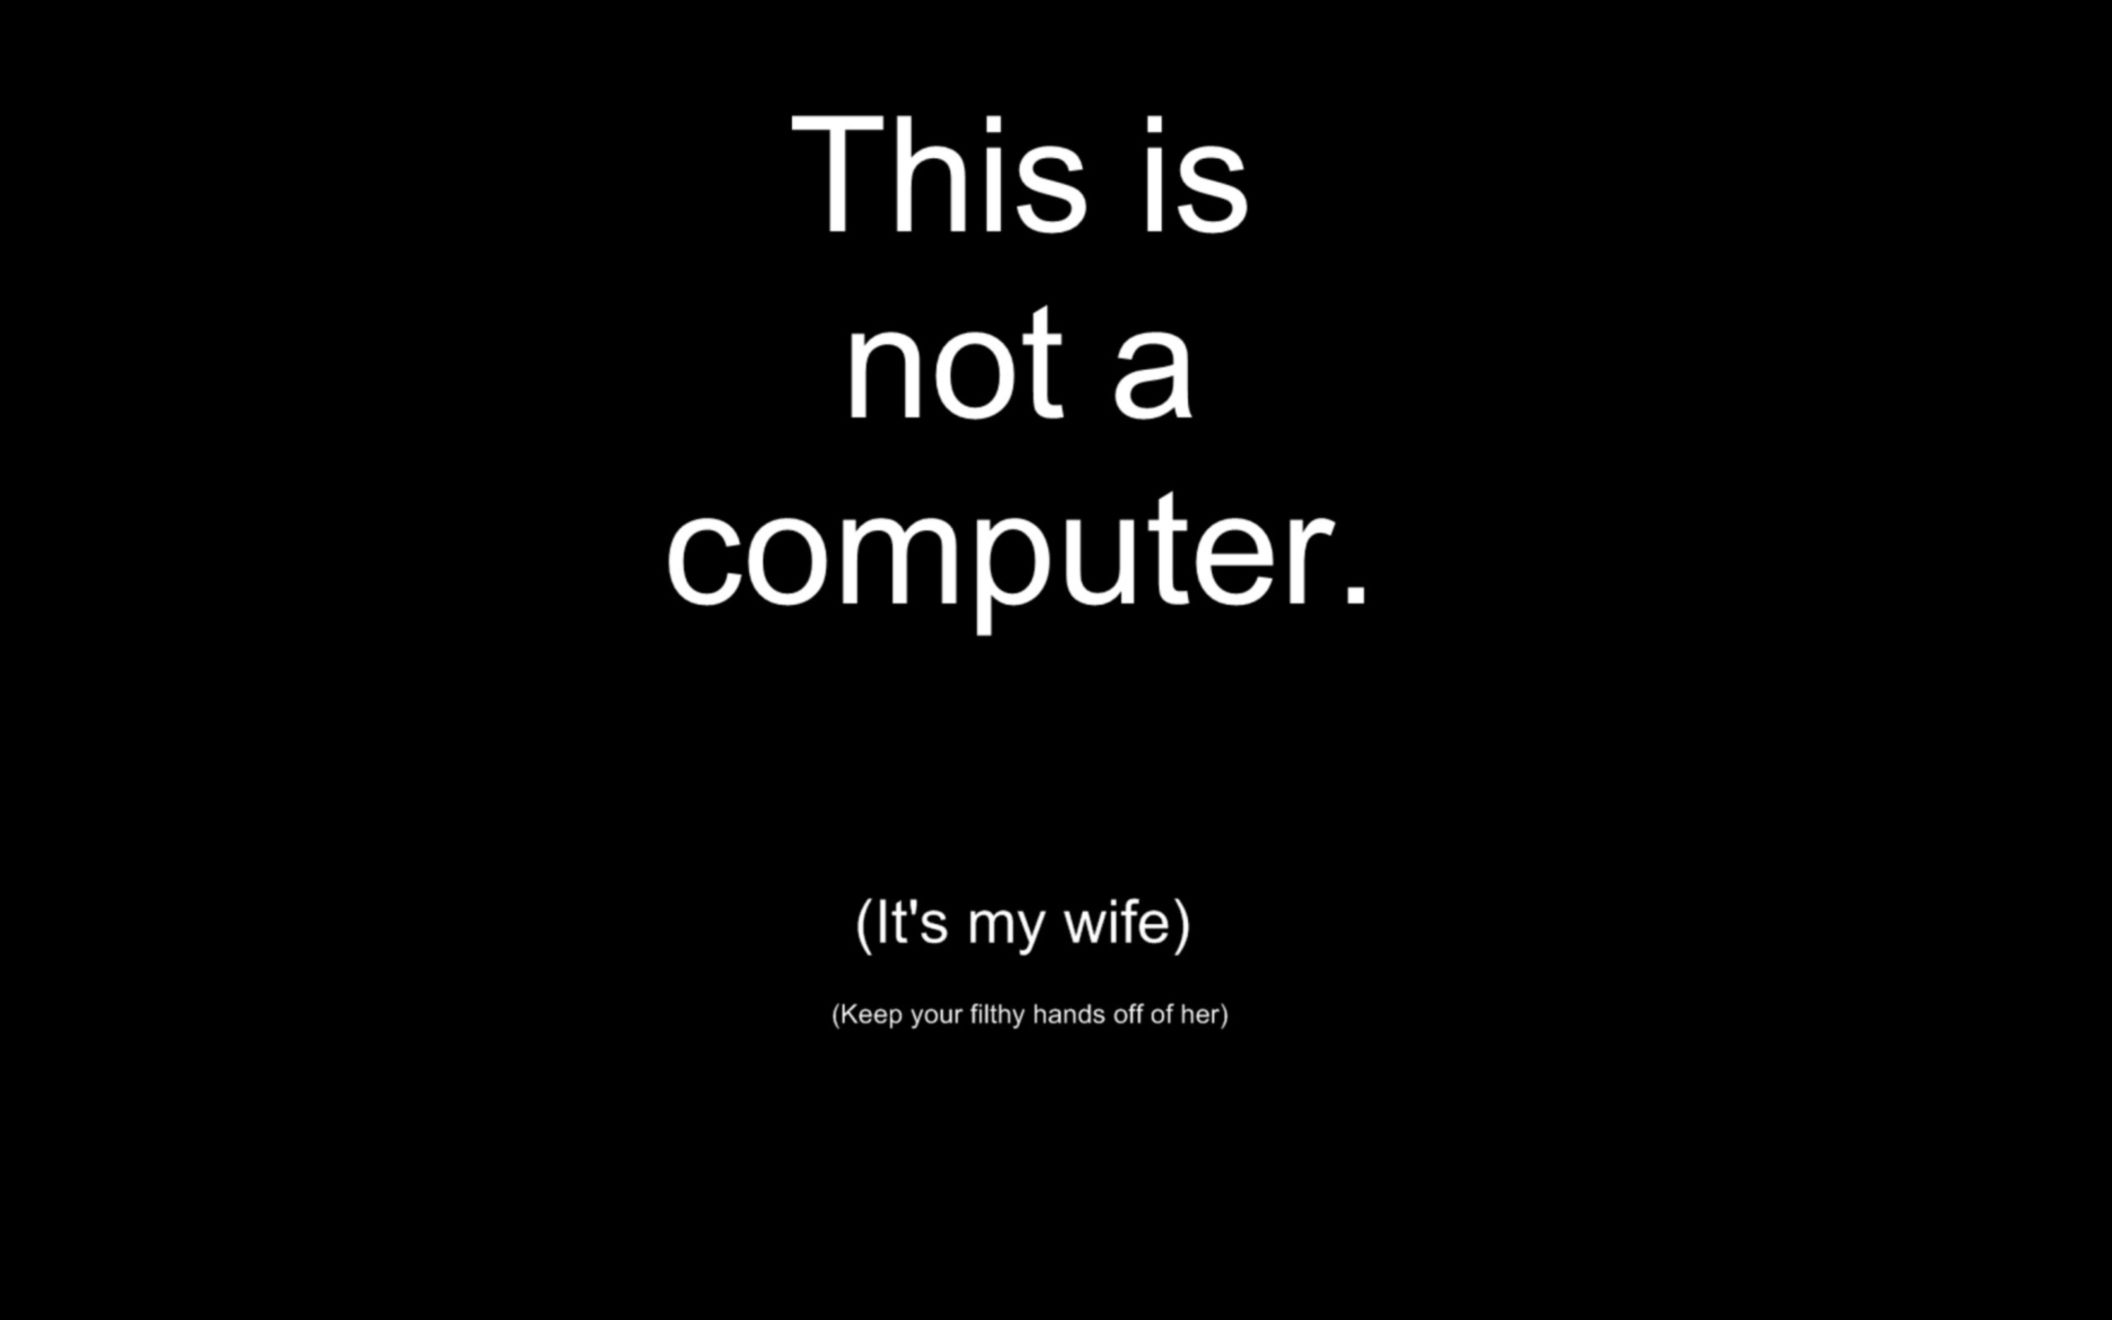 Wife Computer Funny Wallpaper Desktop HD Wallpaper   Download 2112x1320